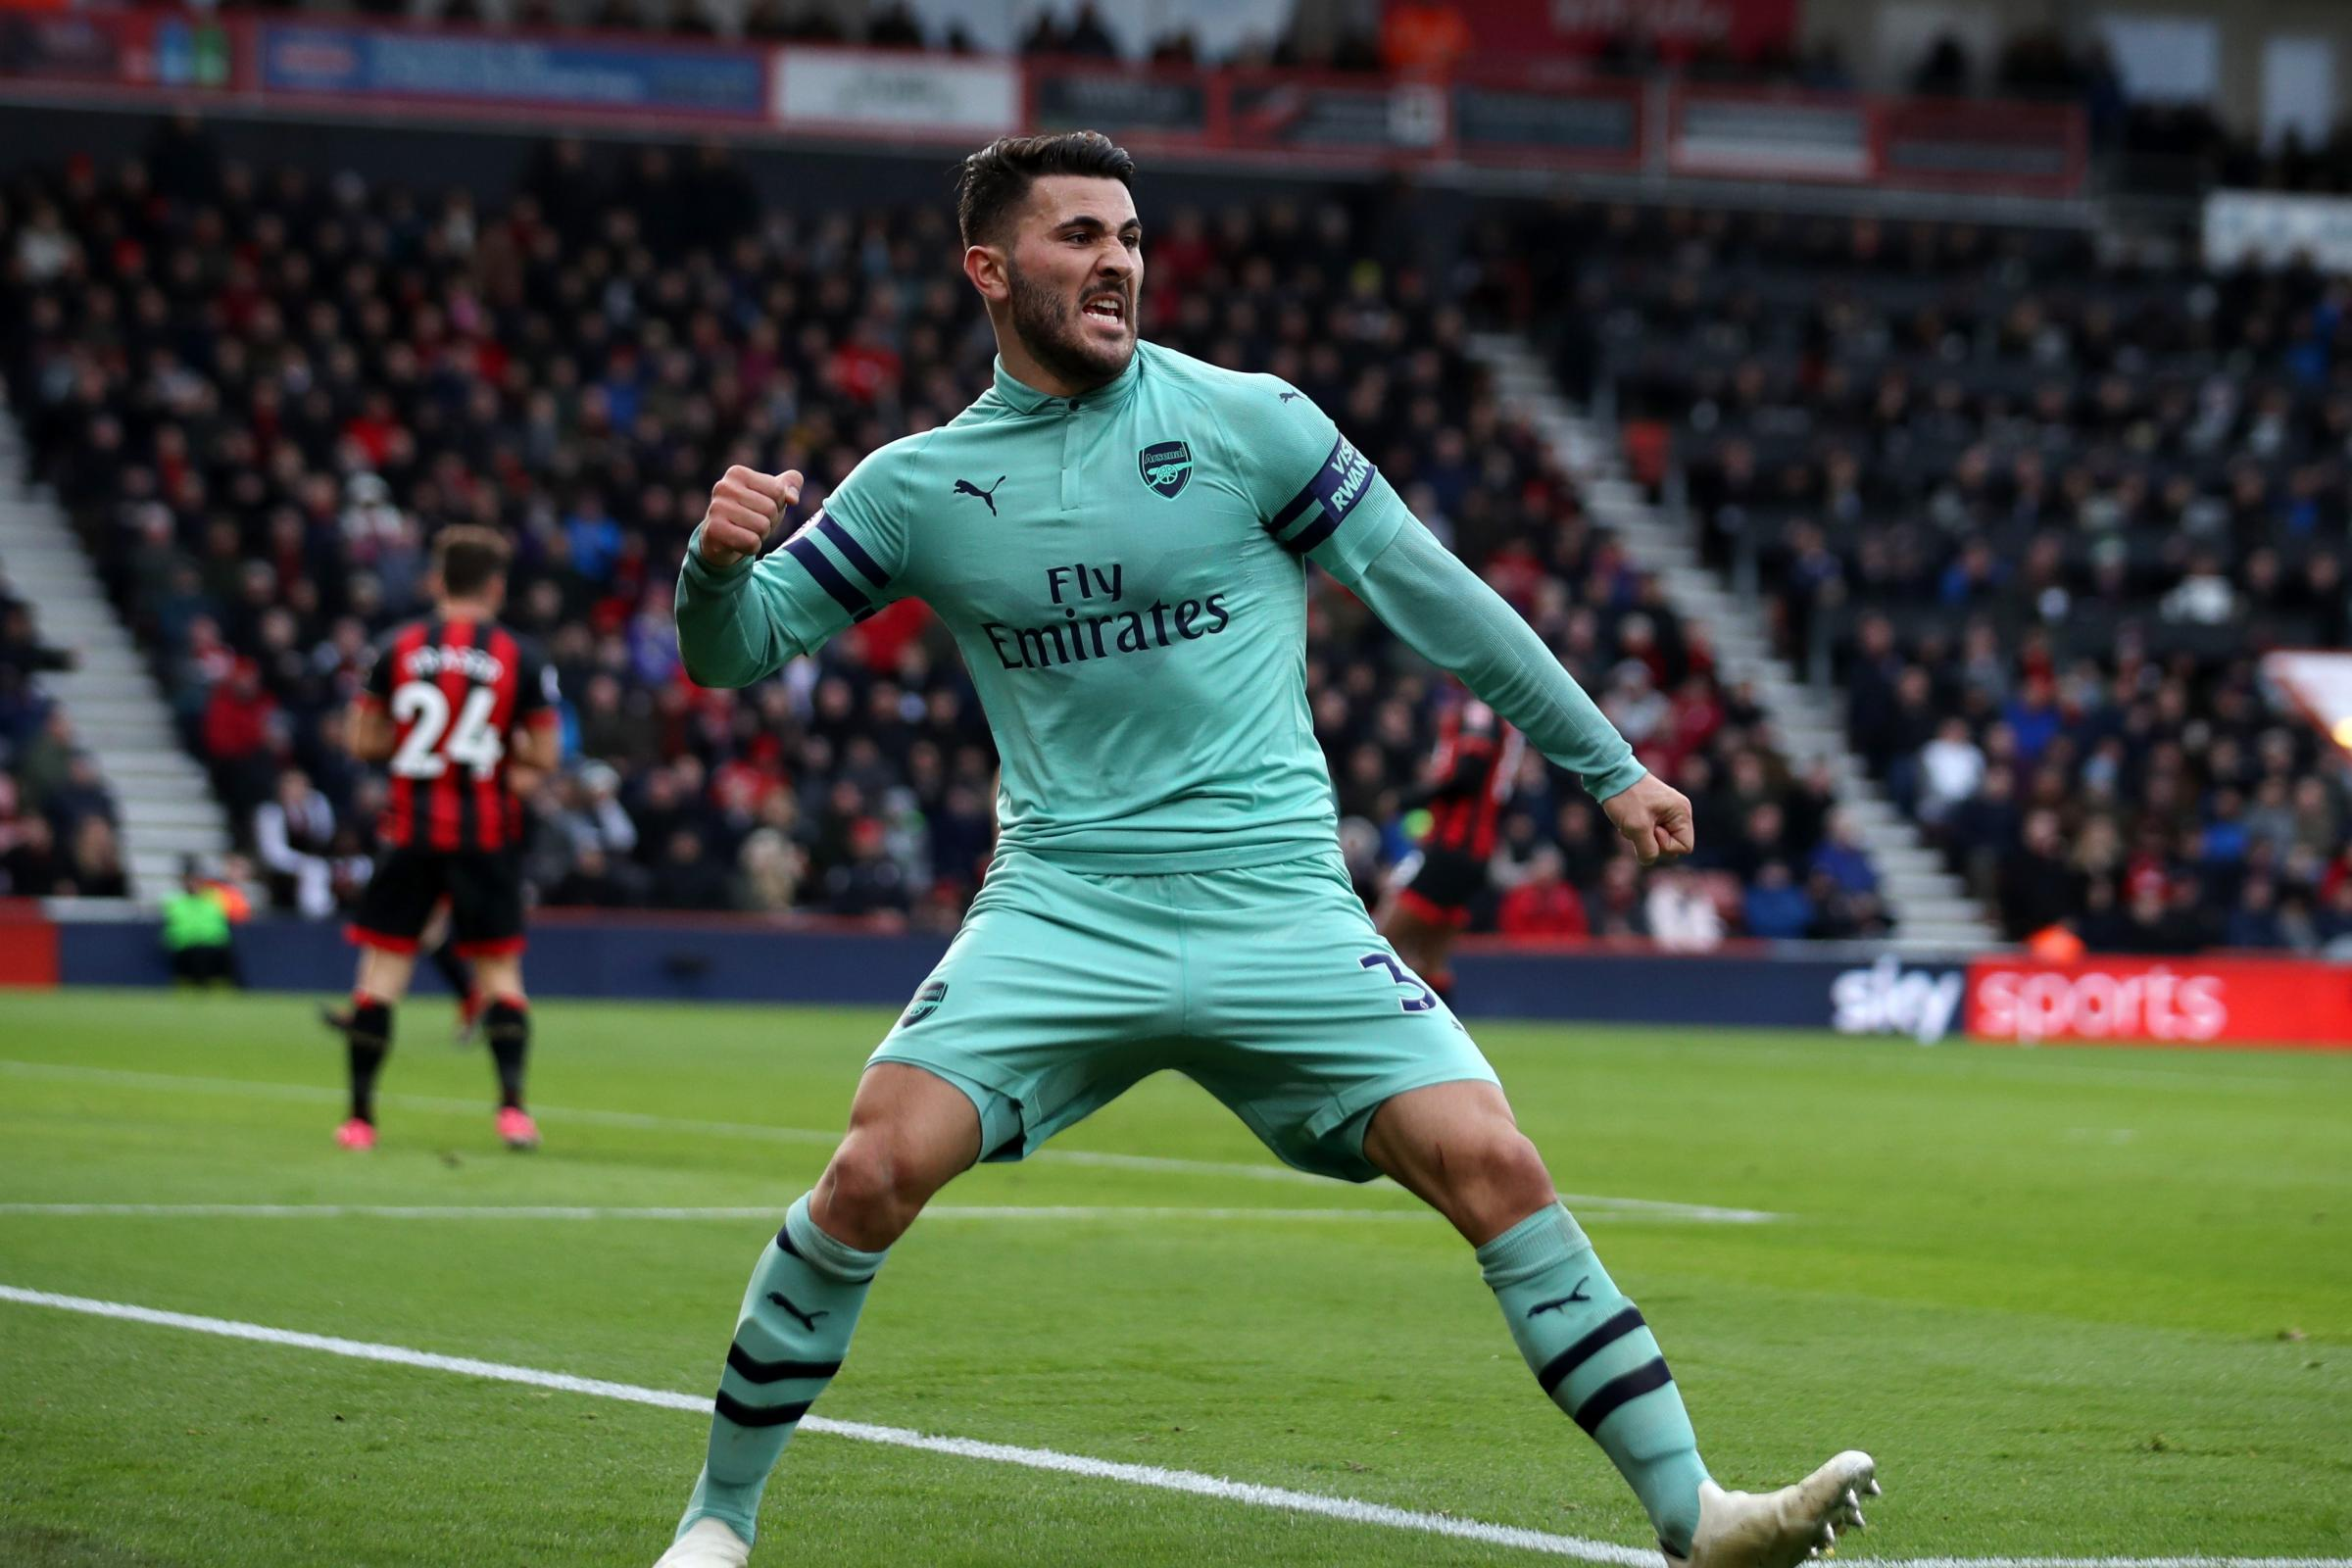 Sead Kolasinac believes Arsenal have to start better to improve their chances of Europa League success